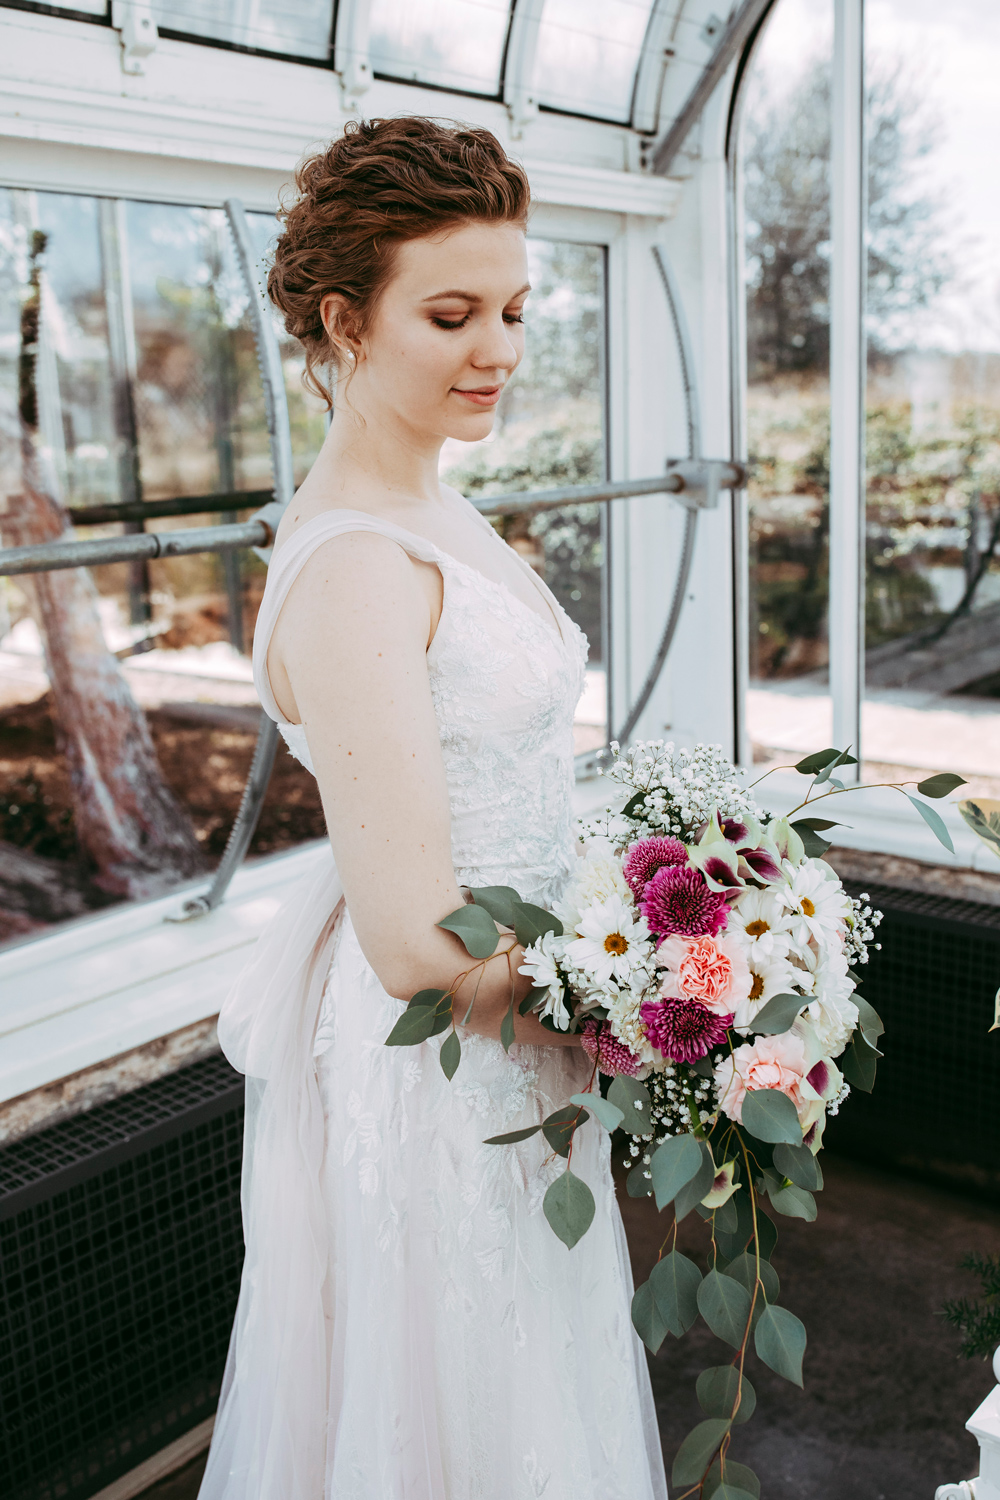 Gorgeous bride photo at the Will Rogers Park Greenhouse in OKC by Amanda Lynn Photography.